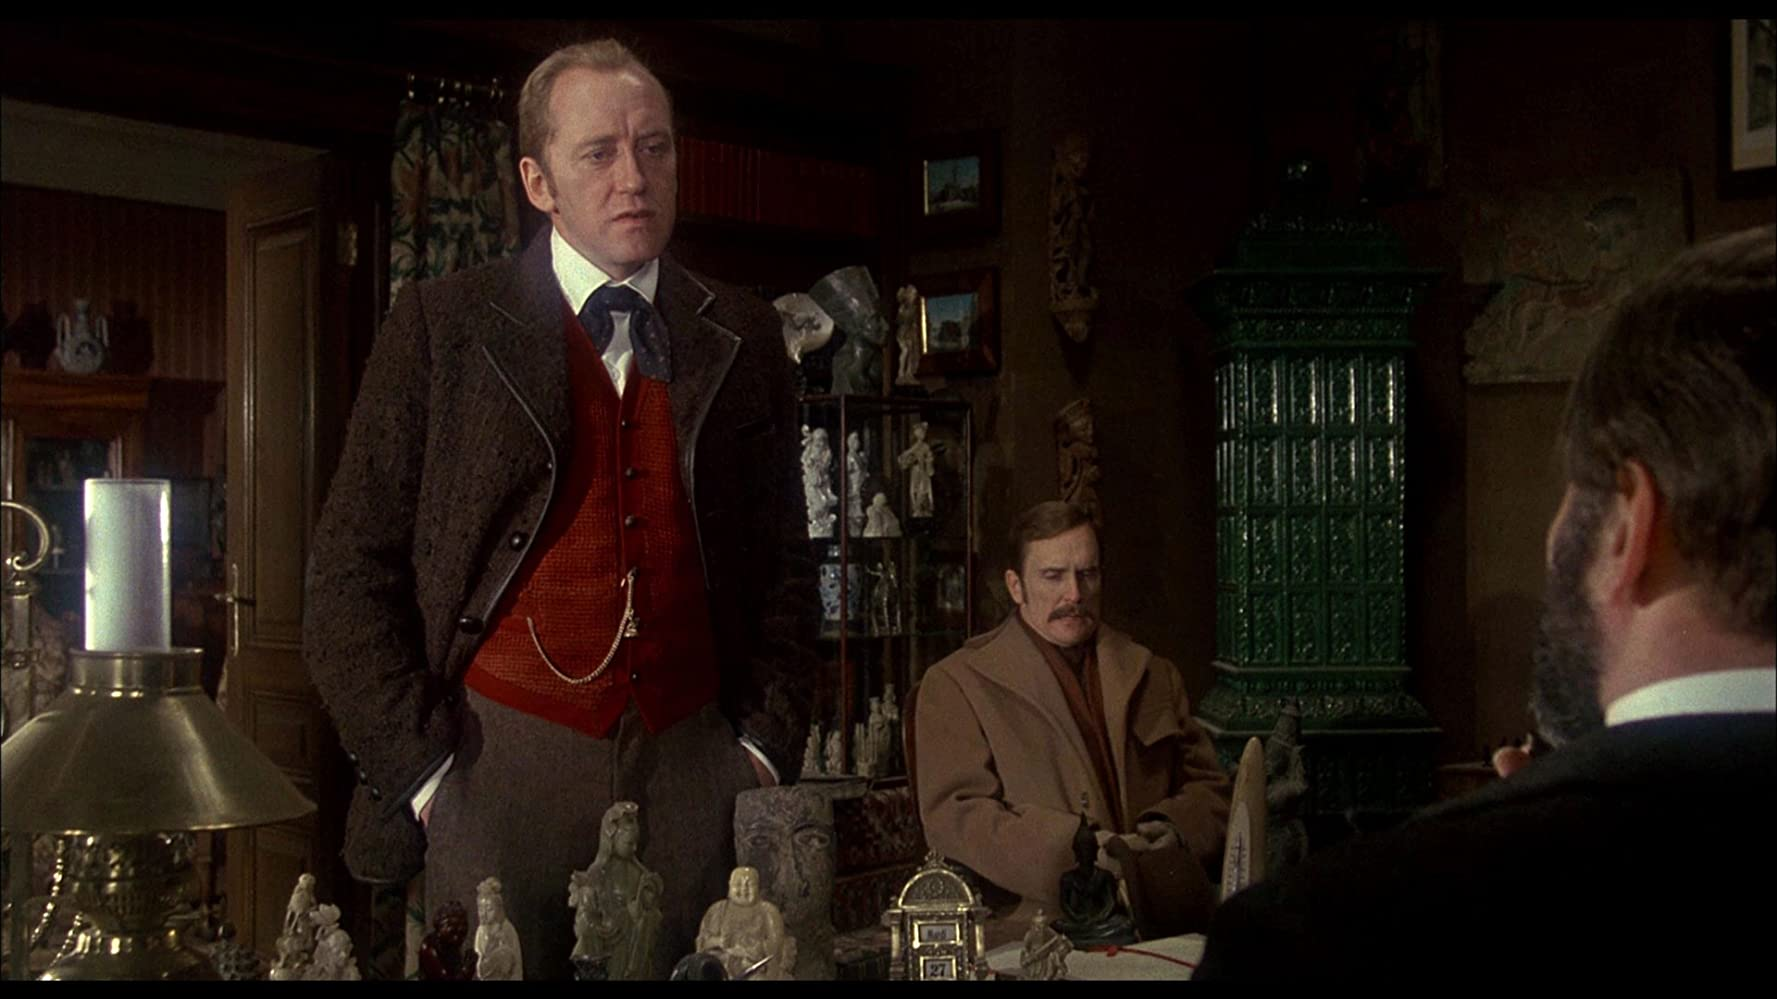 Robert Duvall and Nicol Williamson in The Seven-Per-Cent Solution (1976)